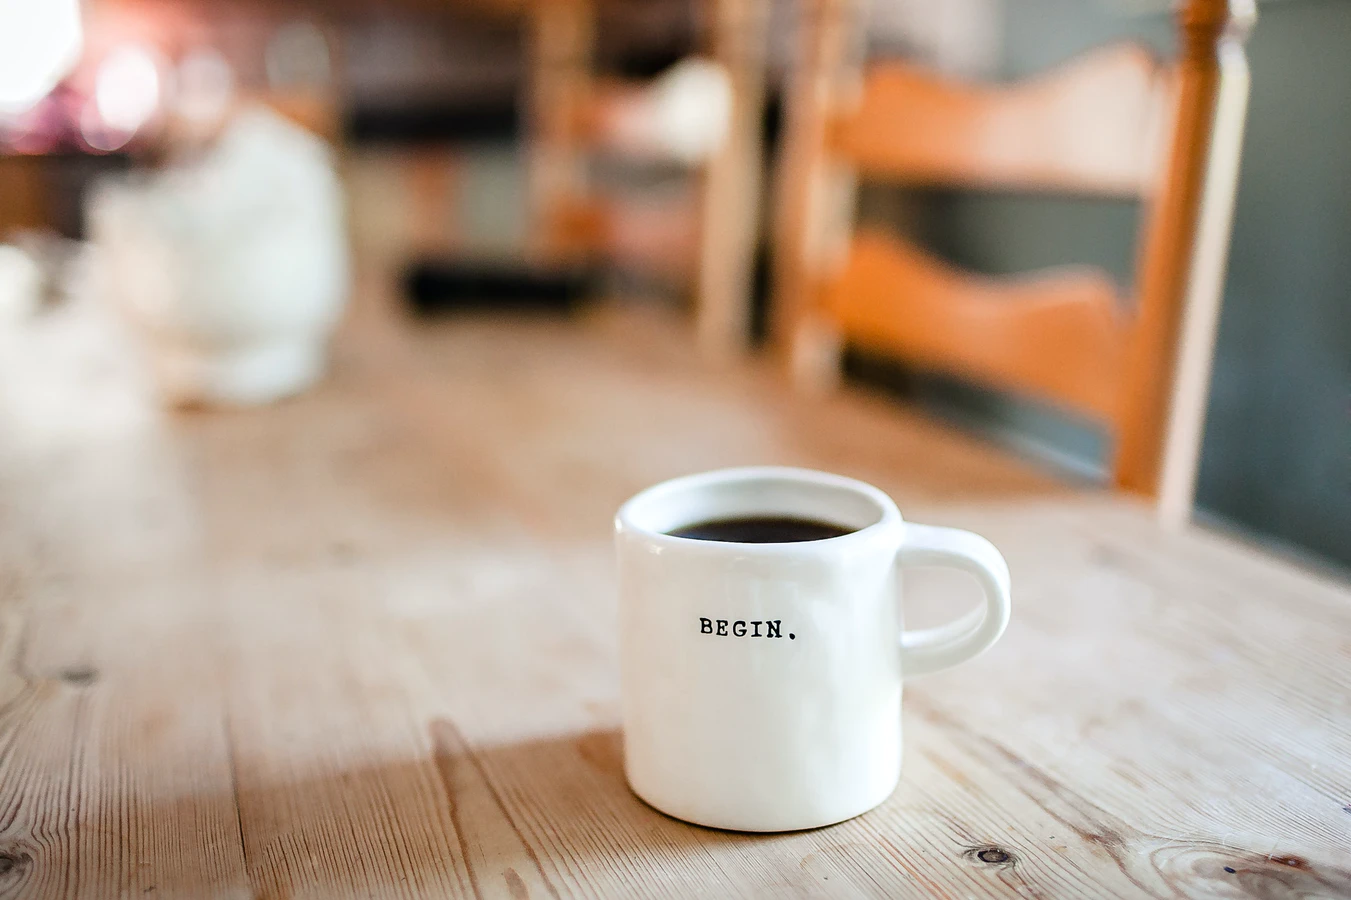 Morning coffee to start business startup checklist